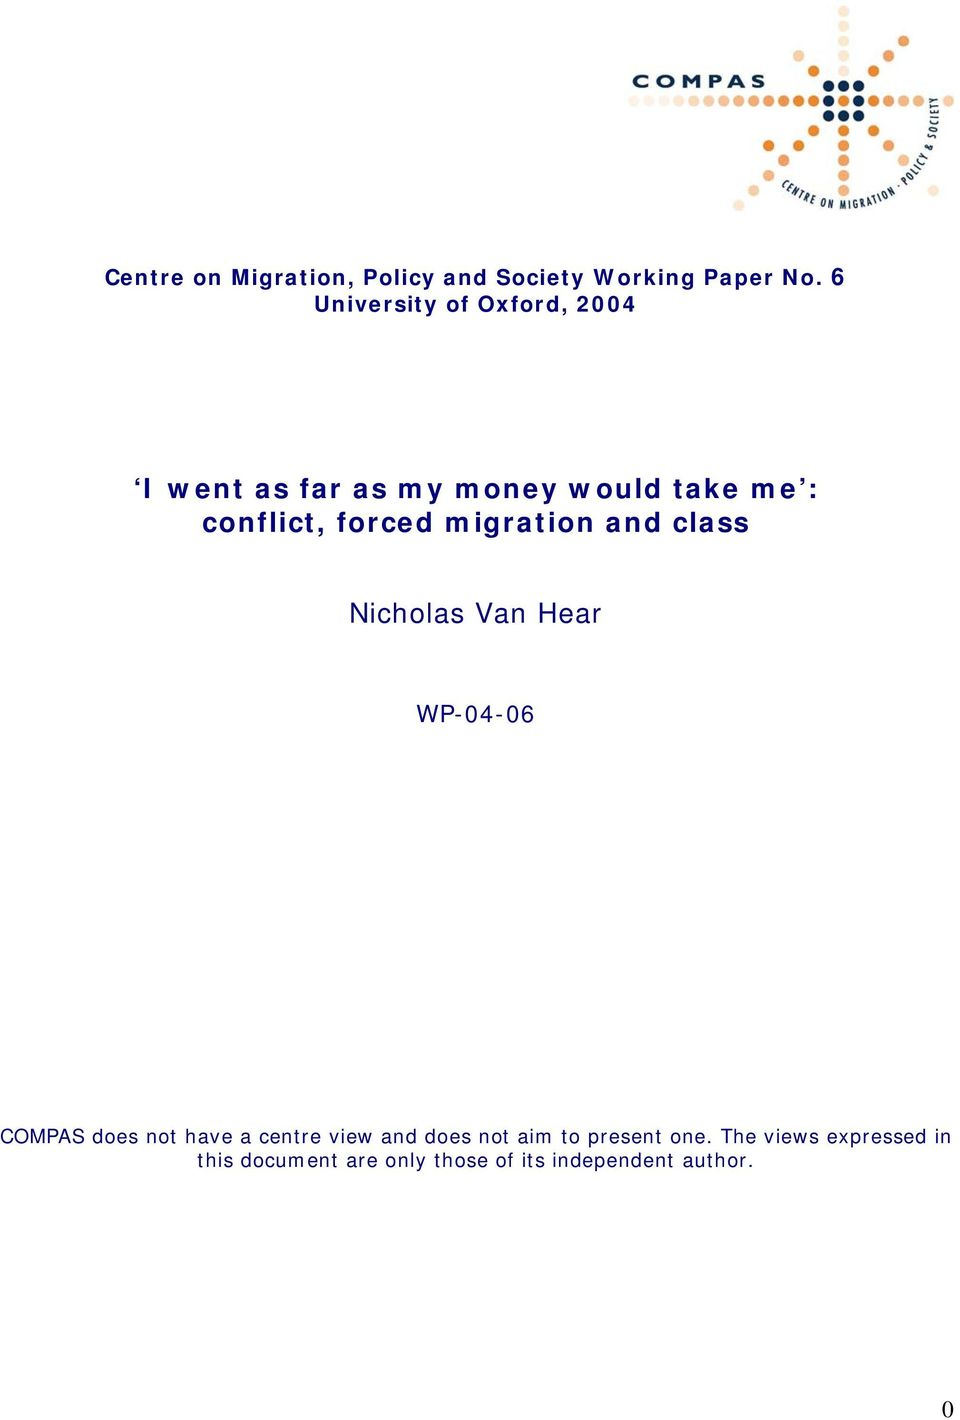 forced migration and class Nicholas Van Hear WP-04-06 COMPAS does not have a centre